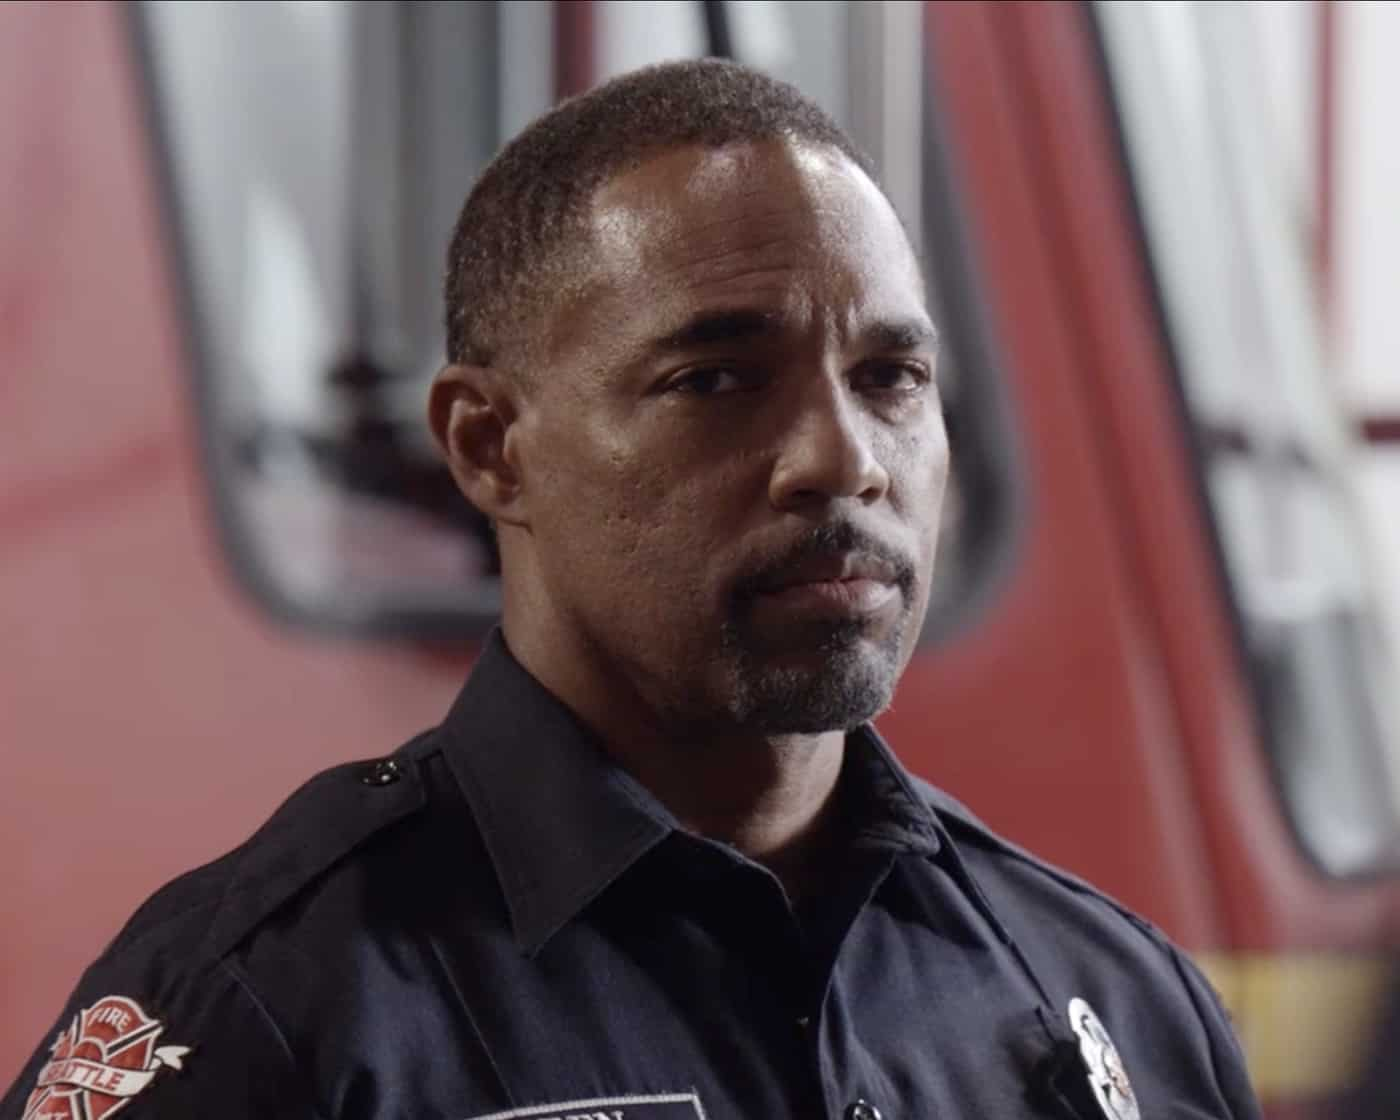 """STATION 19 Season 5 Episode 1 - """"Phoenix from the Flame"""" – Relationships are challenged at Station 19 following Sullivan's actions at Maya and Carina's wedding, putting his marriage with Andy to the test. Dean comes to terms with his feelings for Vic, while Travis rekindles an old flame. The annual Phoenix Festival brings out some reckless behavior in some of Seattle's citizens, challenging the teams at Station 19 and Grey Sloan Memorial in the season premiere of """"Station 19,"""" THURSDAY, SEPT. 30 (8:00-9:00 p.m. EDT), on ABC. (ABC) JASON GEORGE"""